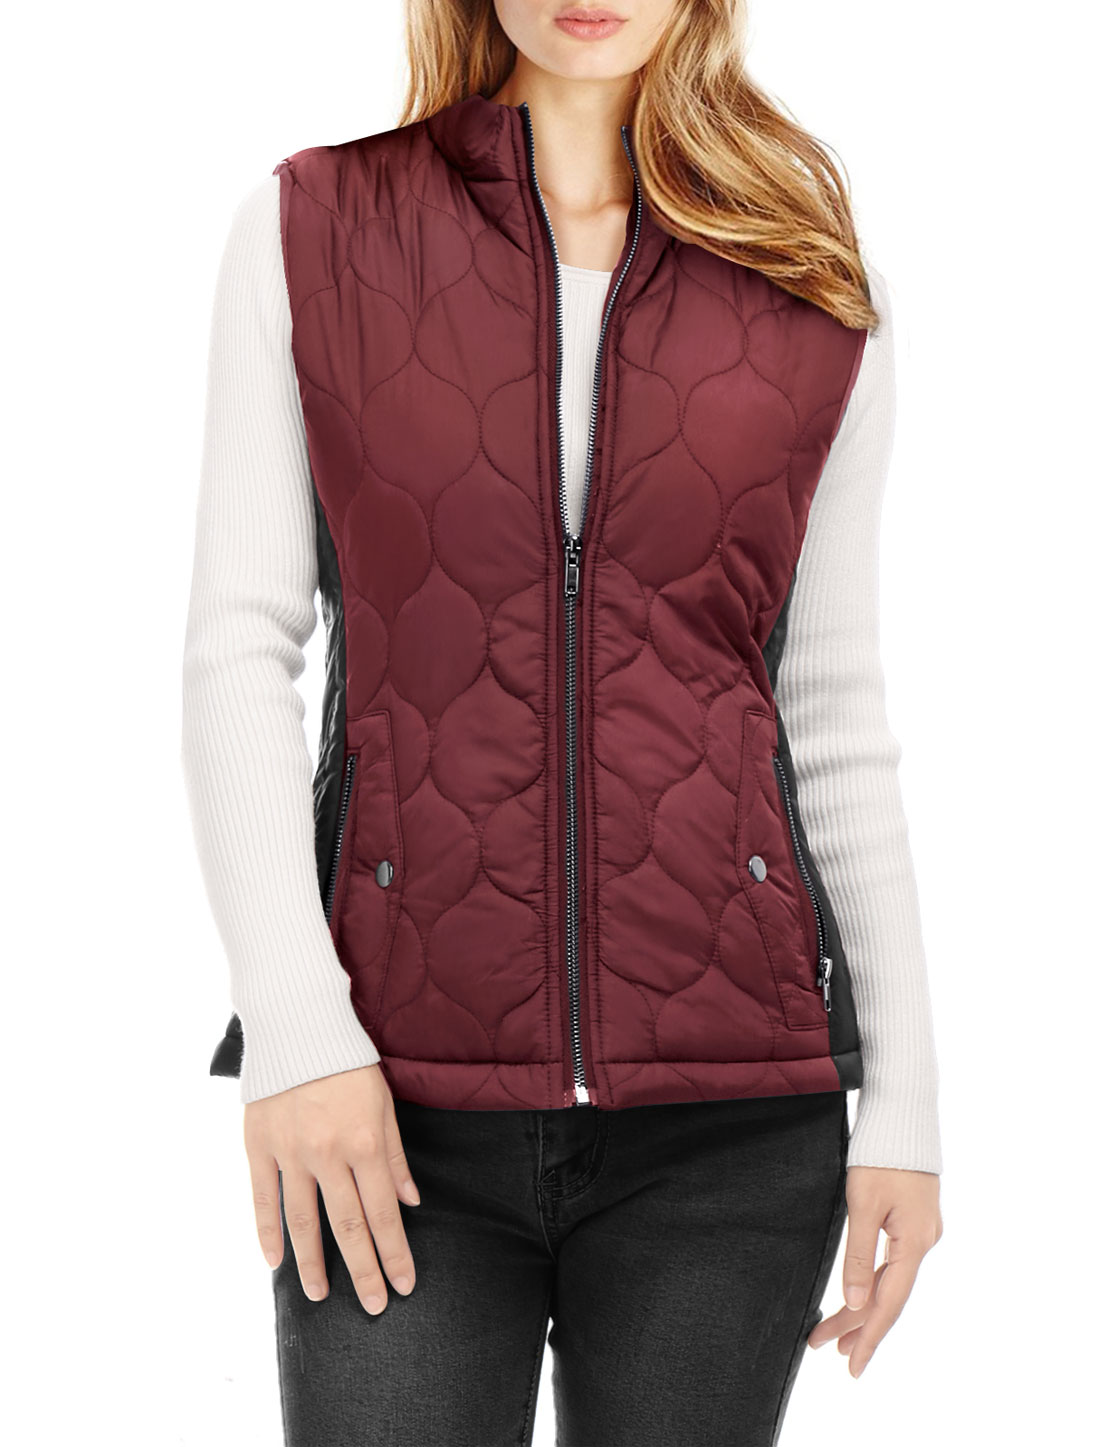 Women Stand Collar Contrast Color Zip Up Quilted Padded Vest Burgundy M